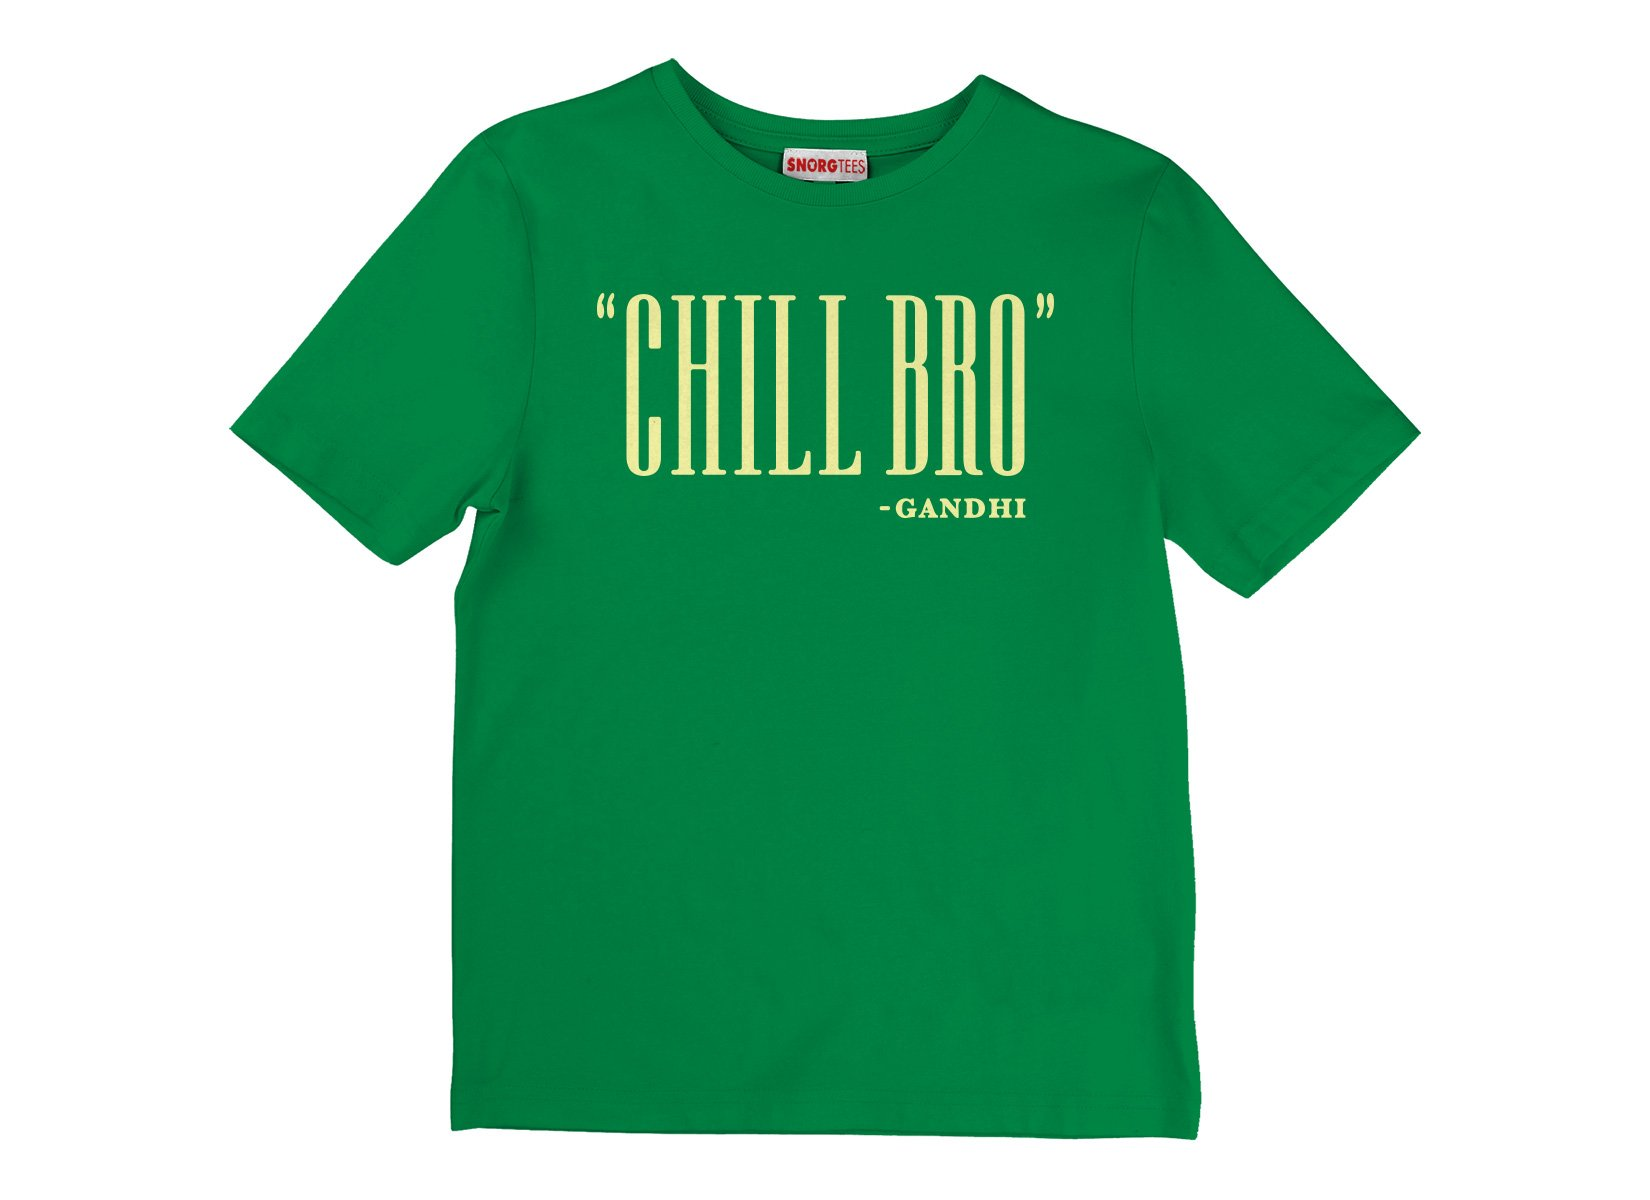 Chill Bro Quote on Kids T-Shirt